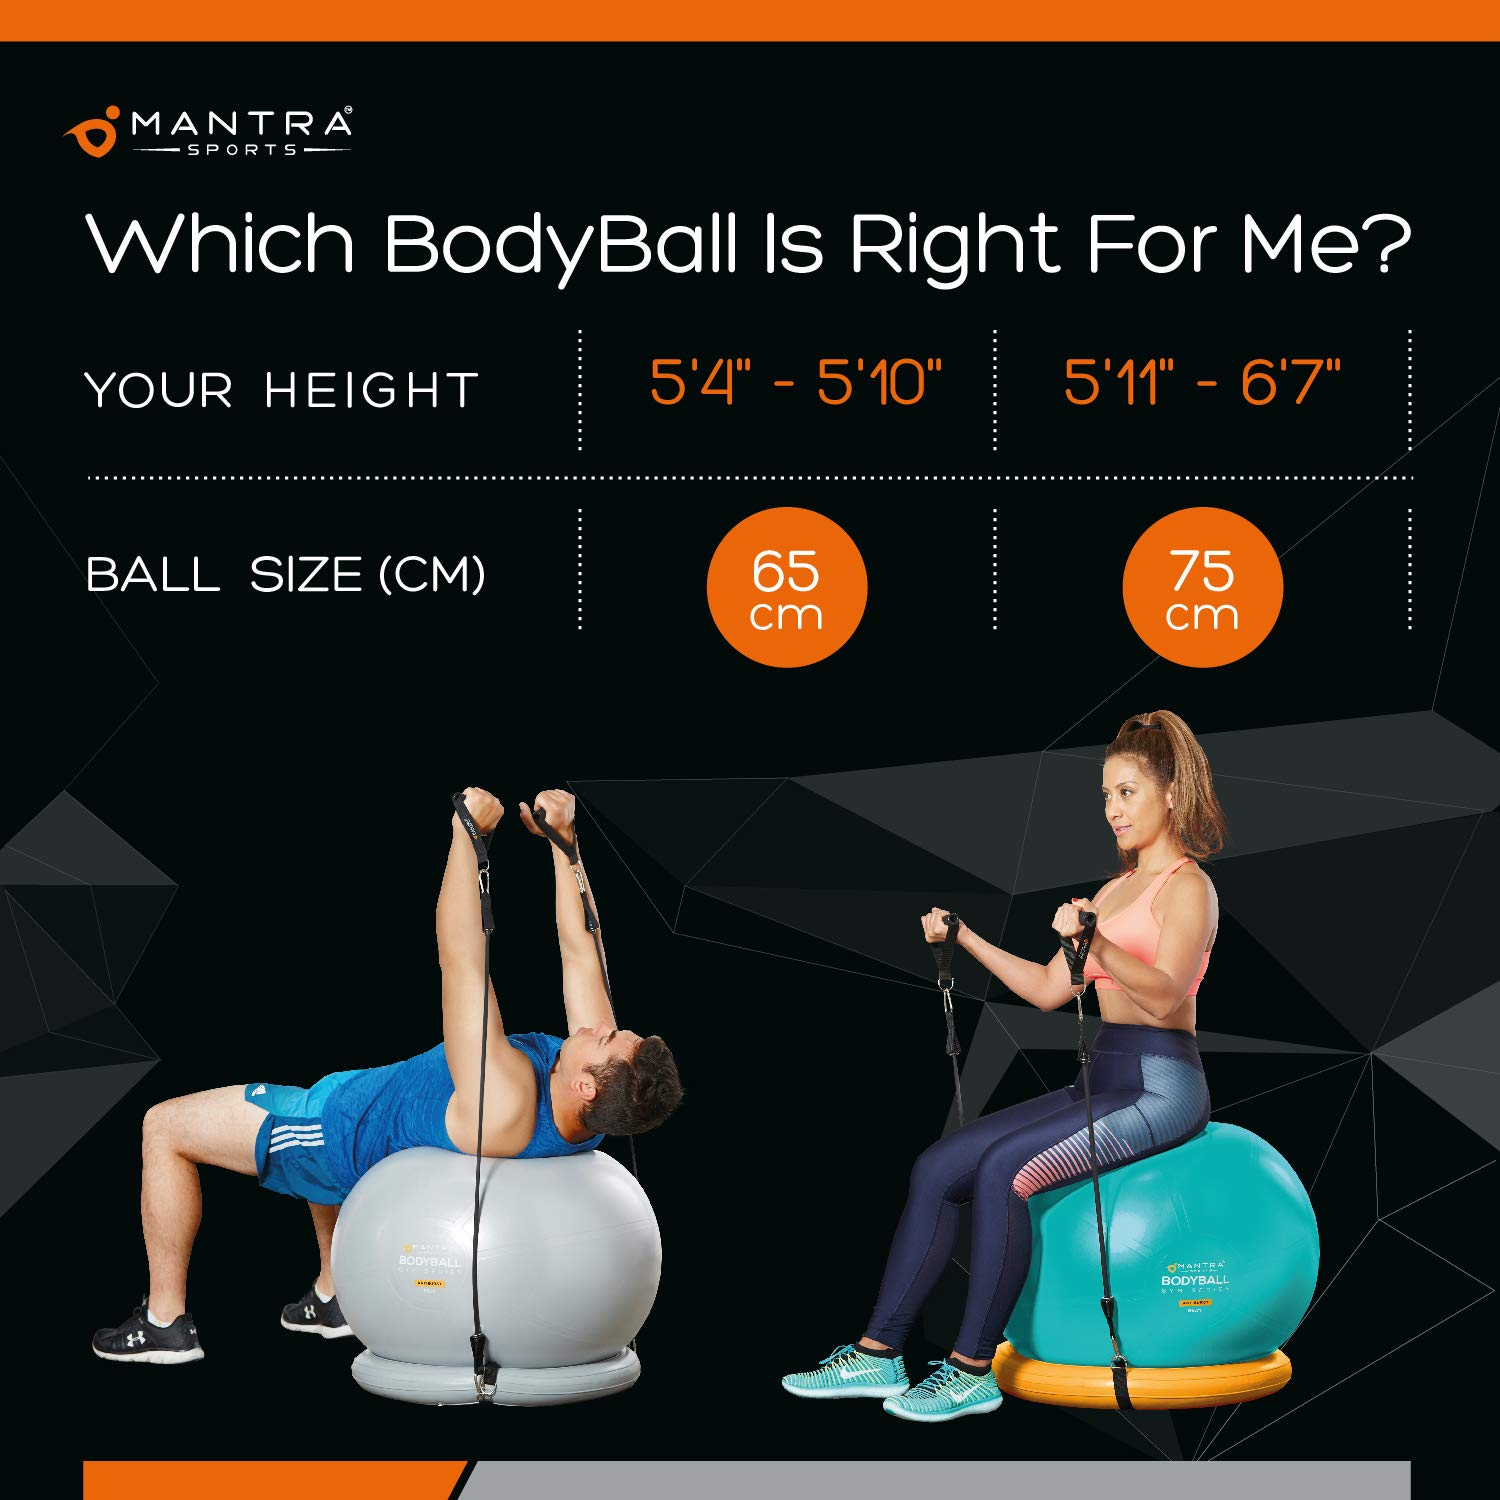 Exercise Ball Chair - 65cm & 75cm Yoga Fitness Pilates Ball & Stability Base for Home Gym & Office - Resistance Bands, Workout Poster & Pump. Improves Balance, Core Strength & Posture - Men & Women by Mantra Sports (Image #8)